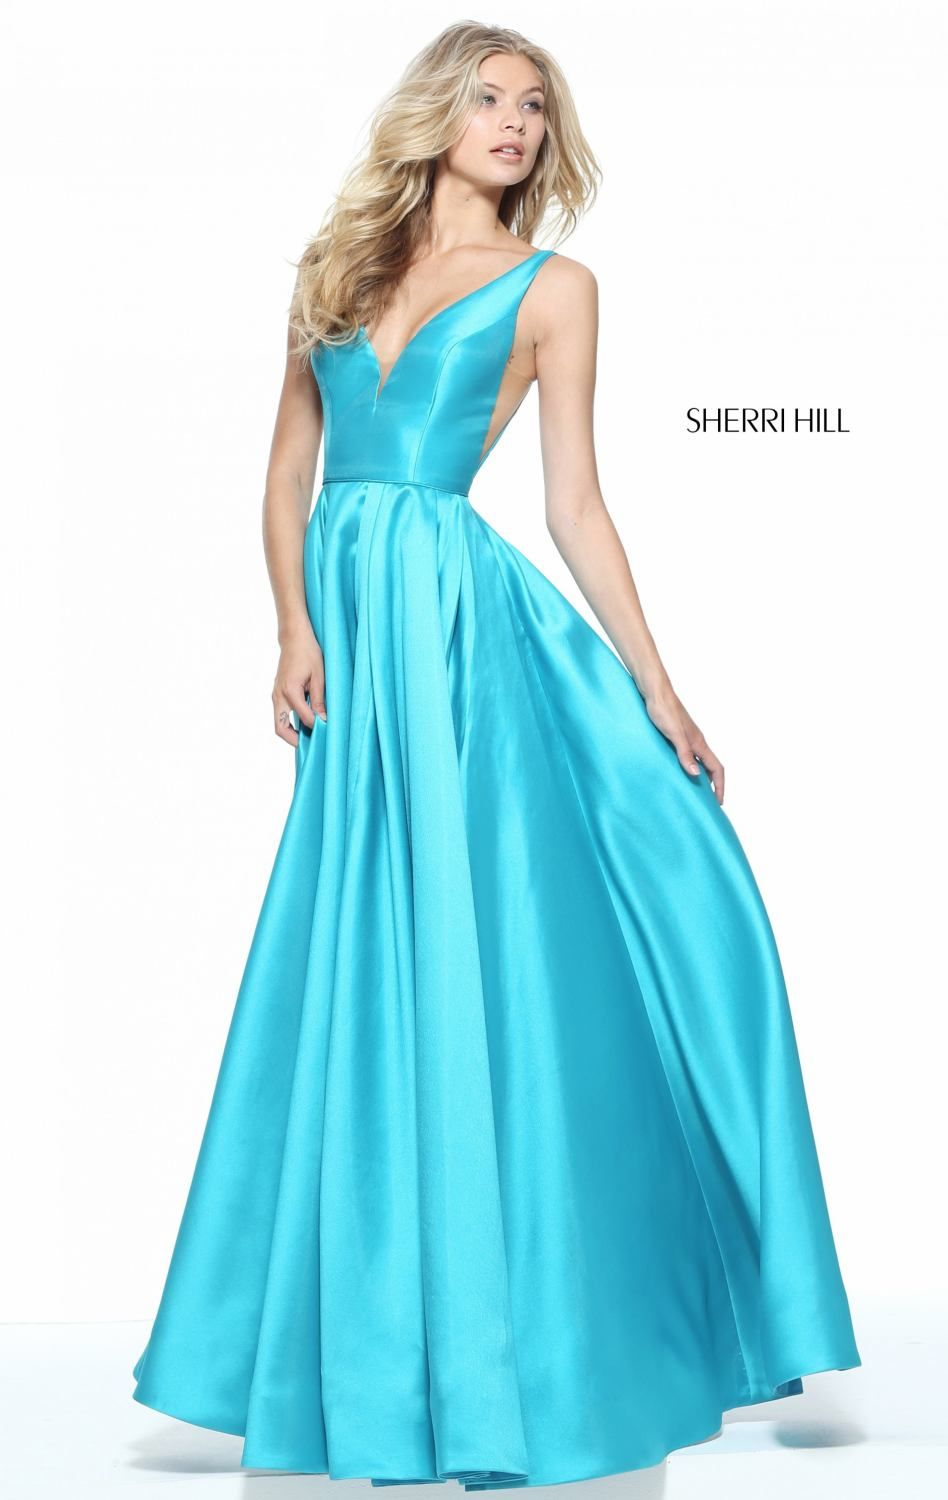 All eyes will be on you in this unforgettable evening dress by ...